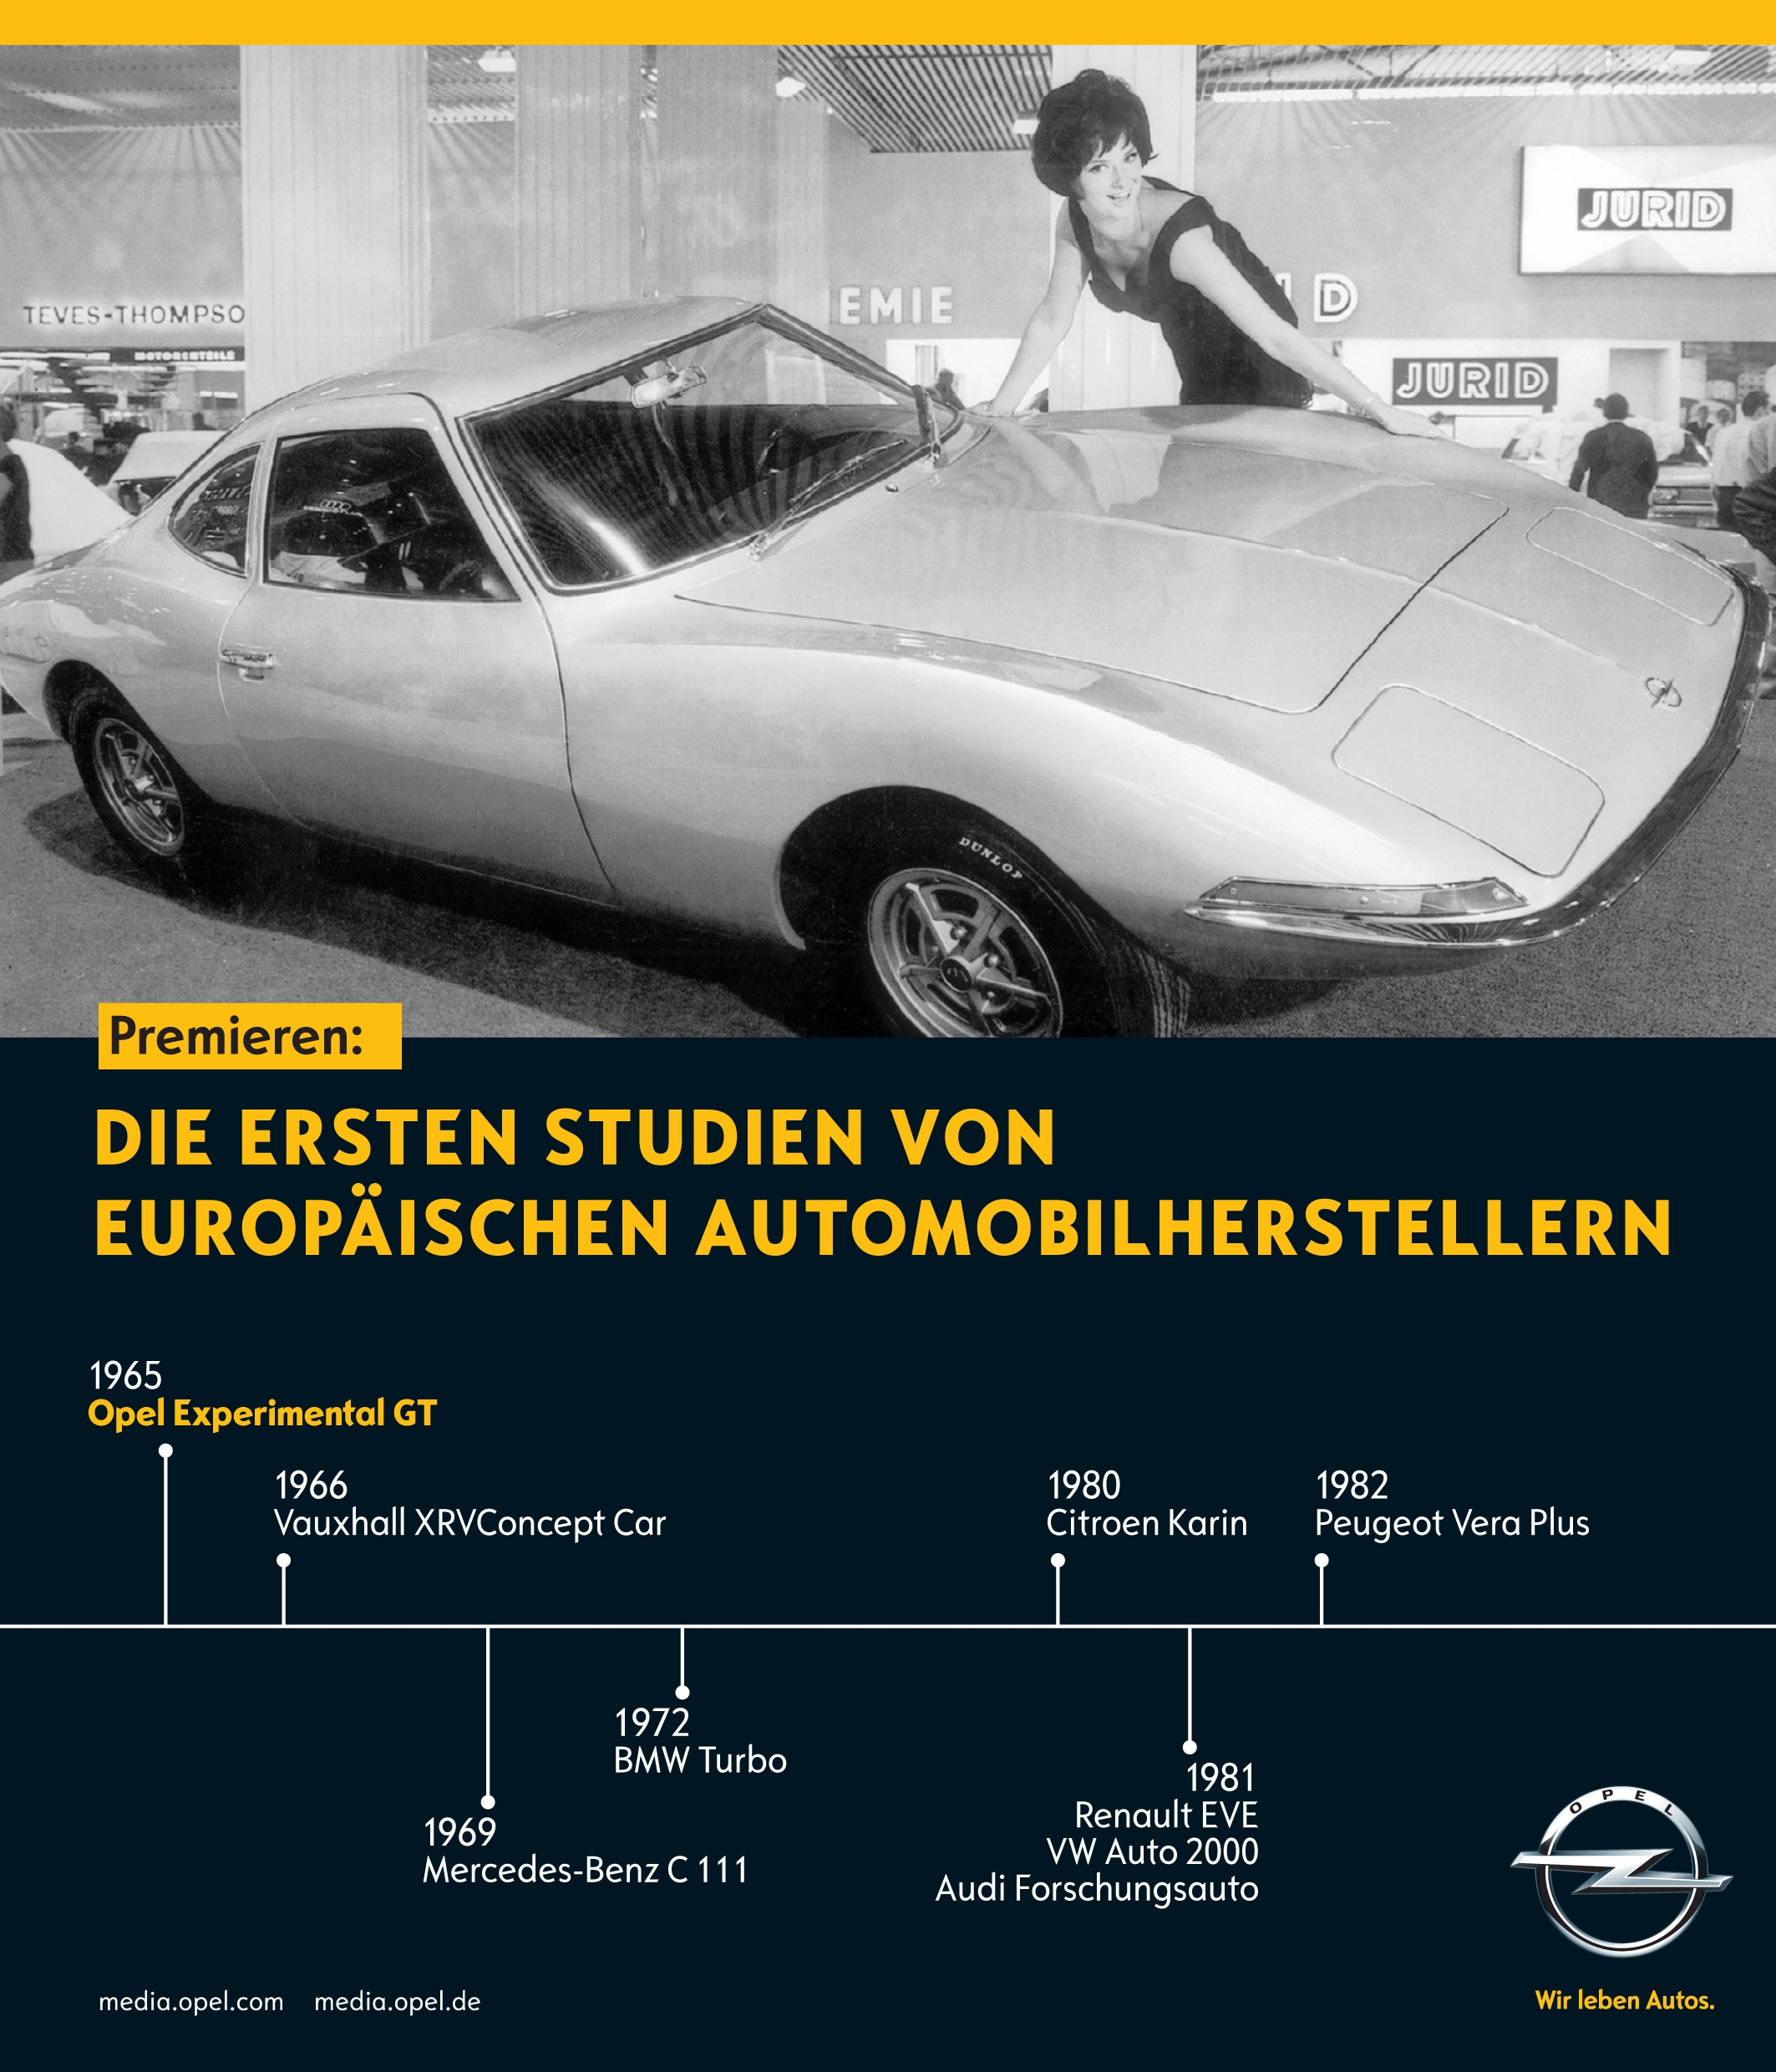 Opel-50-Years-of-Innovation-291679(1)